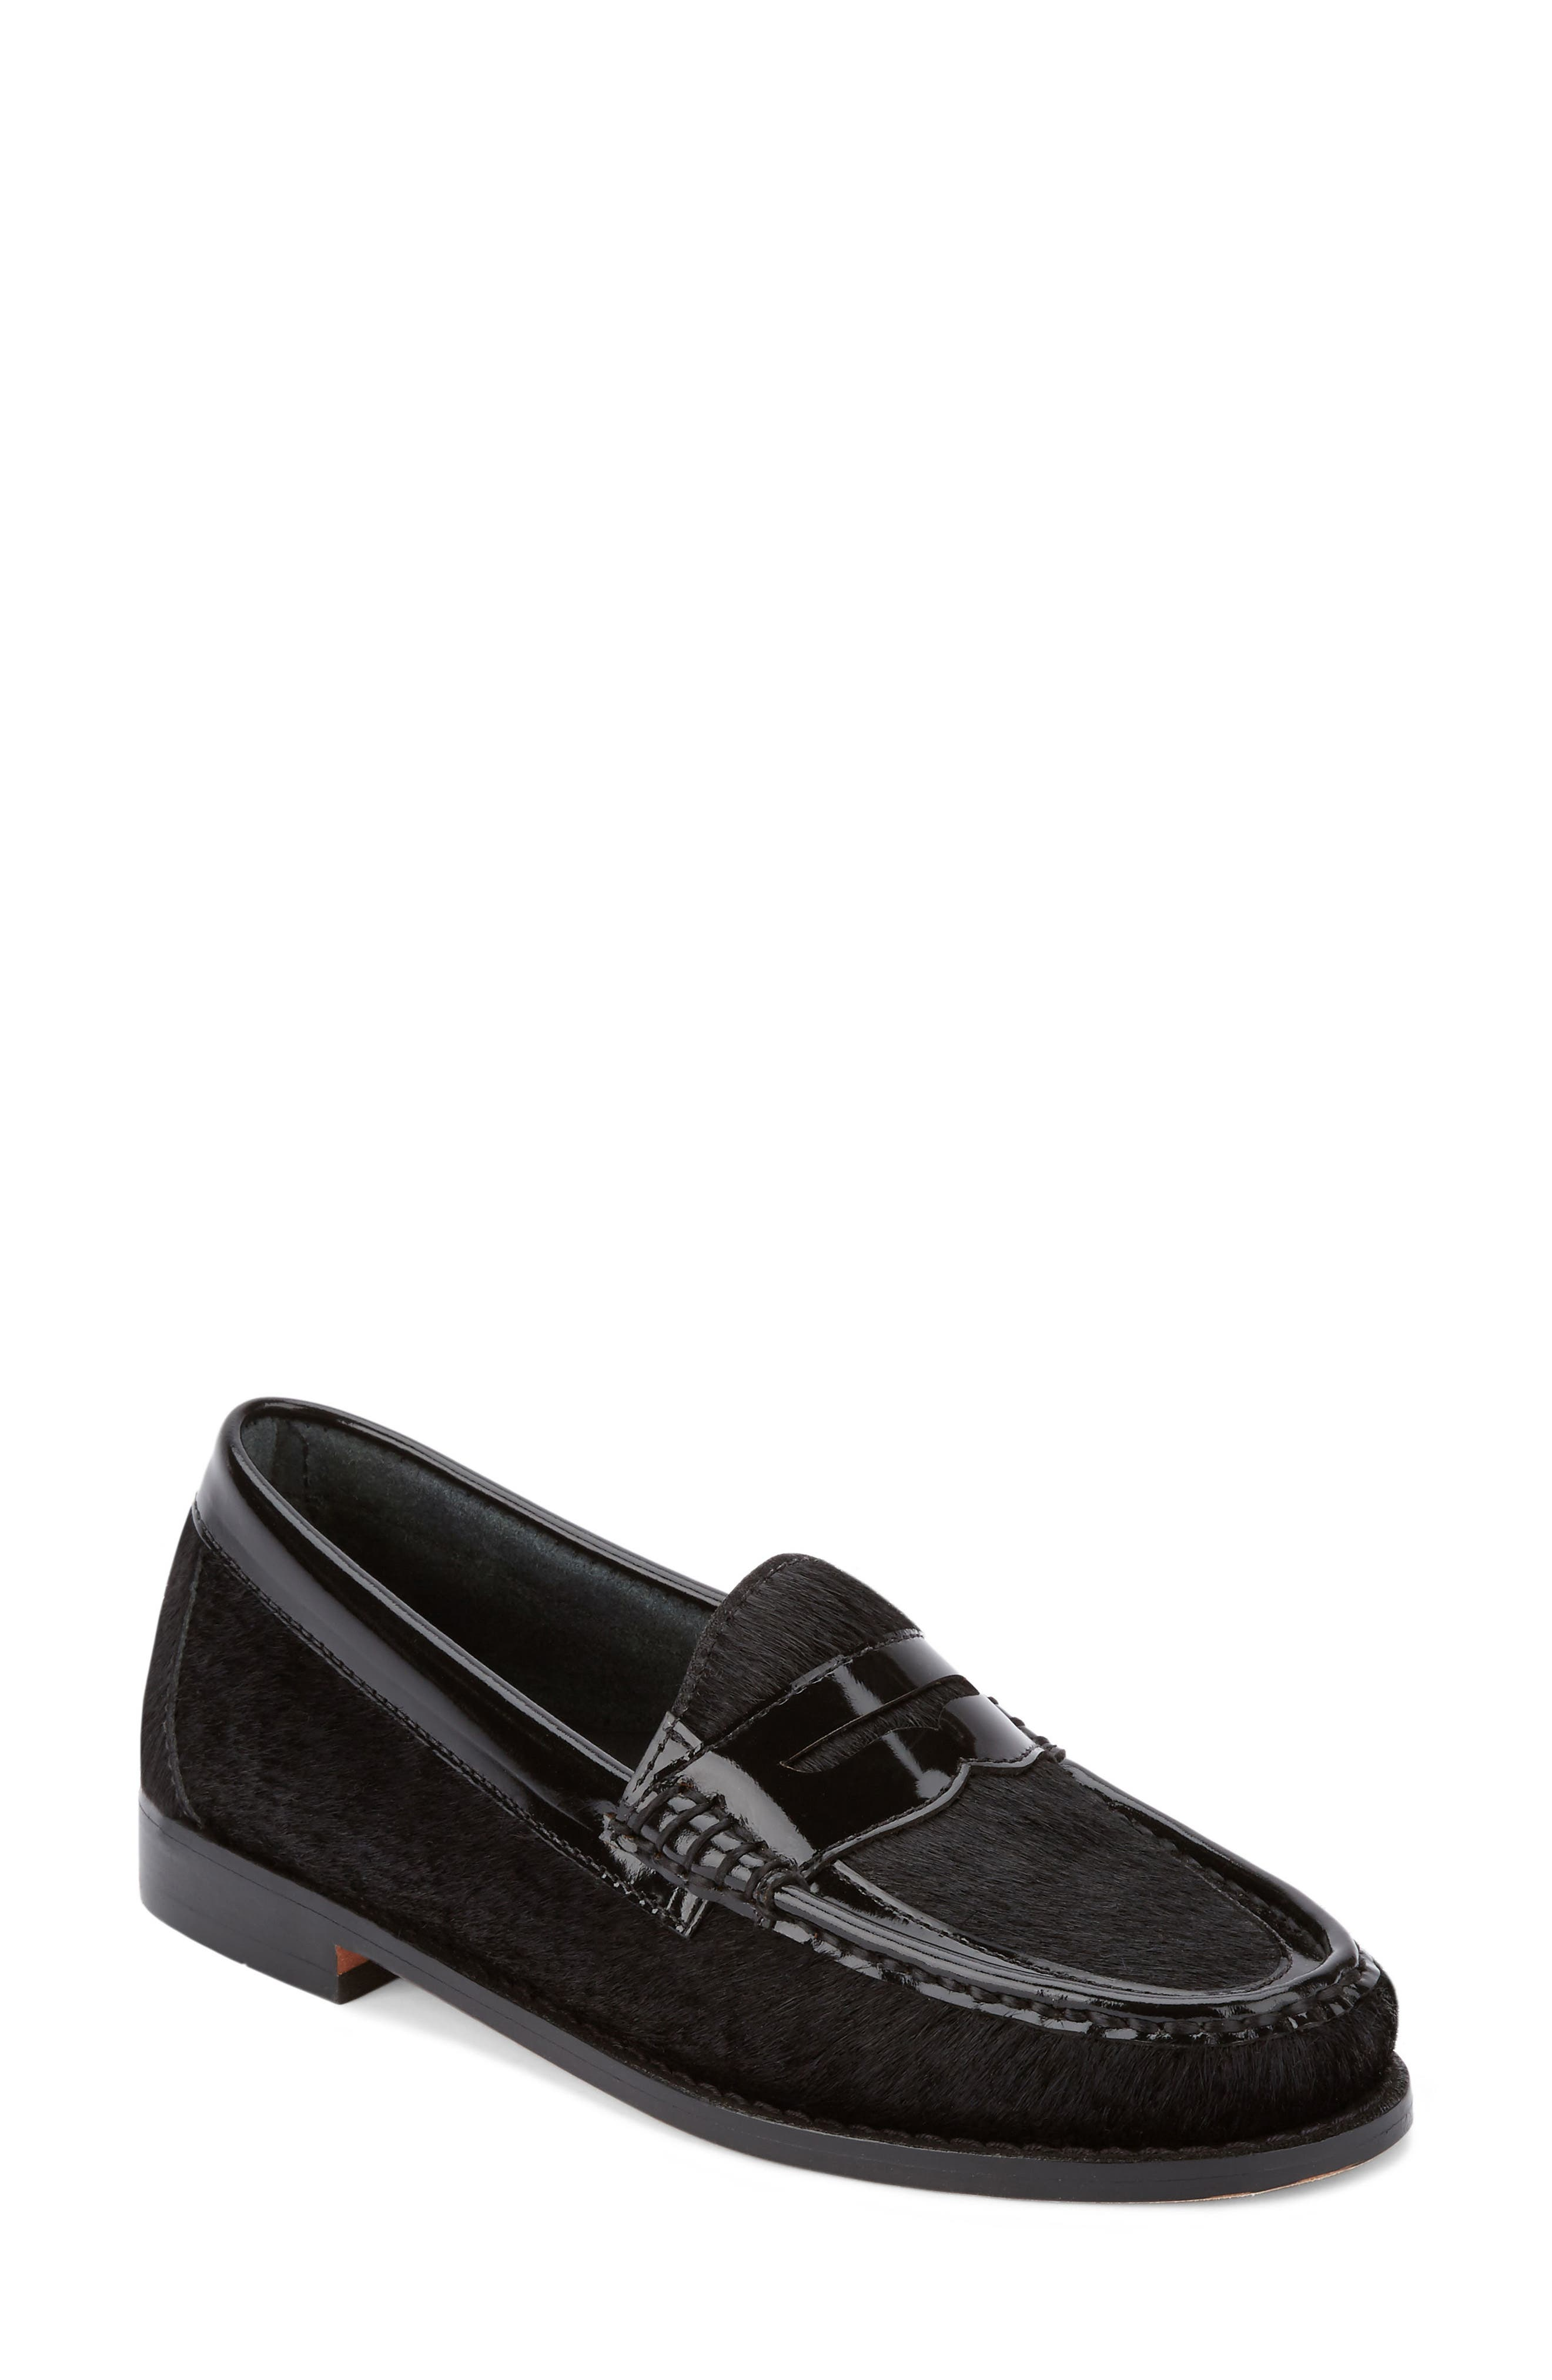 'Whitney' Loafer,                             Main thumbnail 2, color,